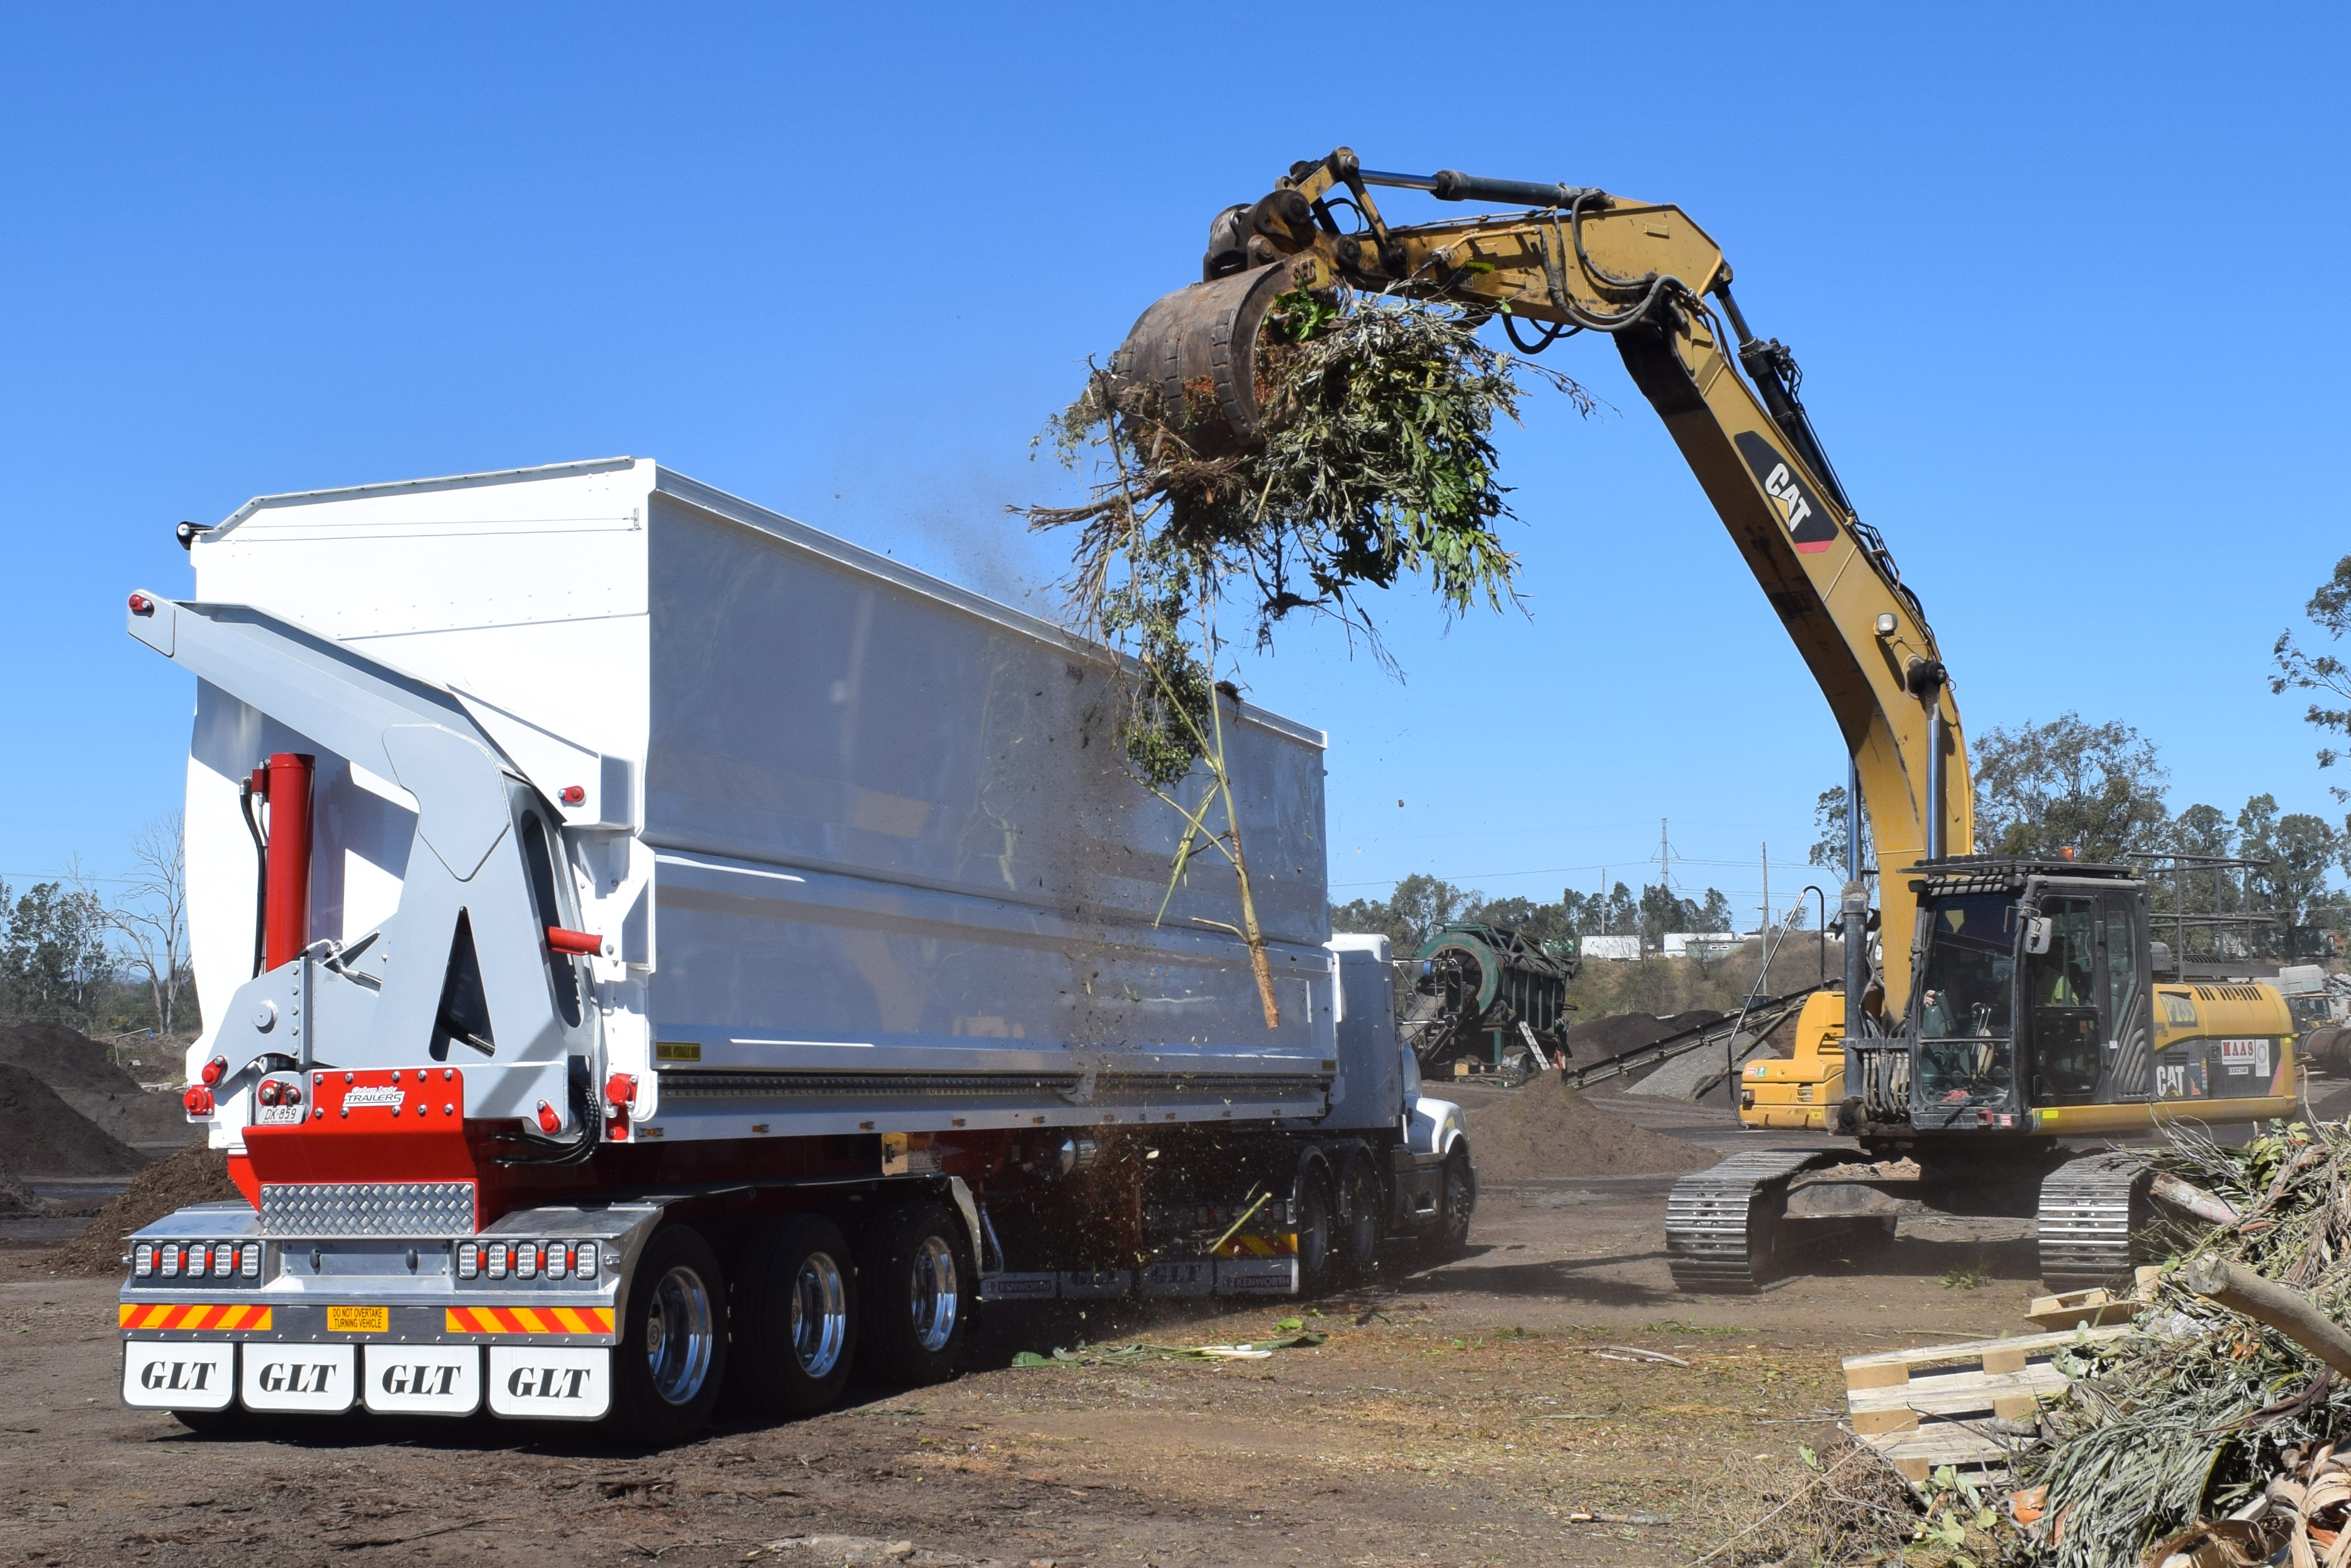 graham lusty trailers Chassis Tipper overview